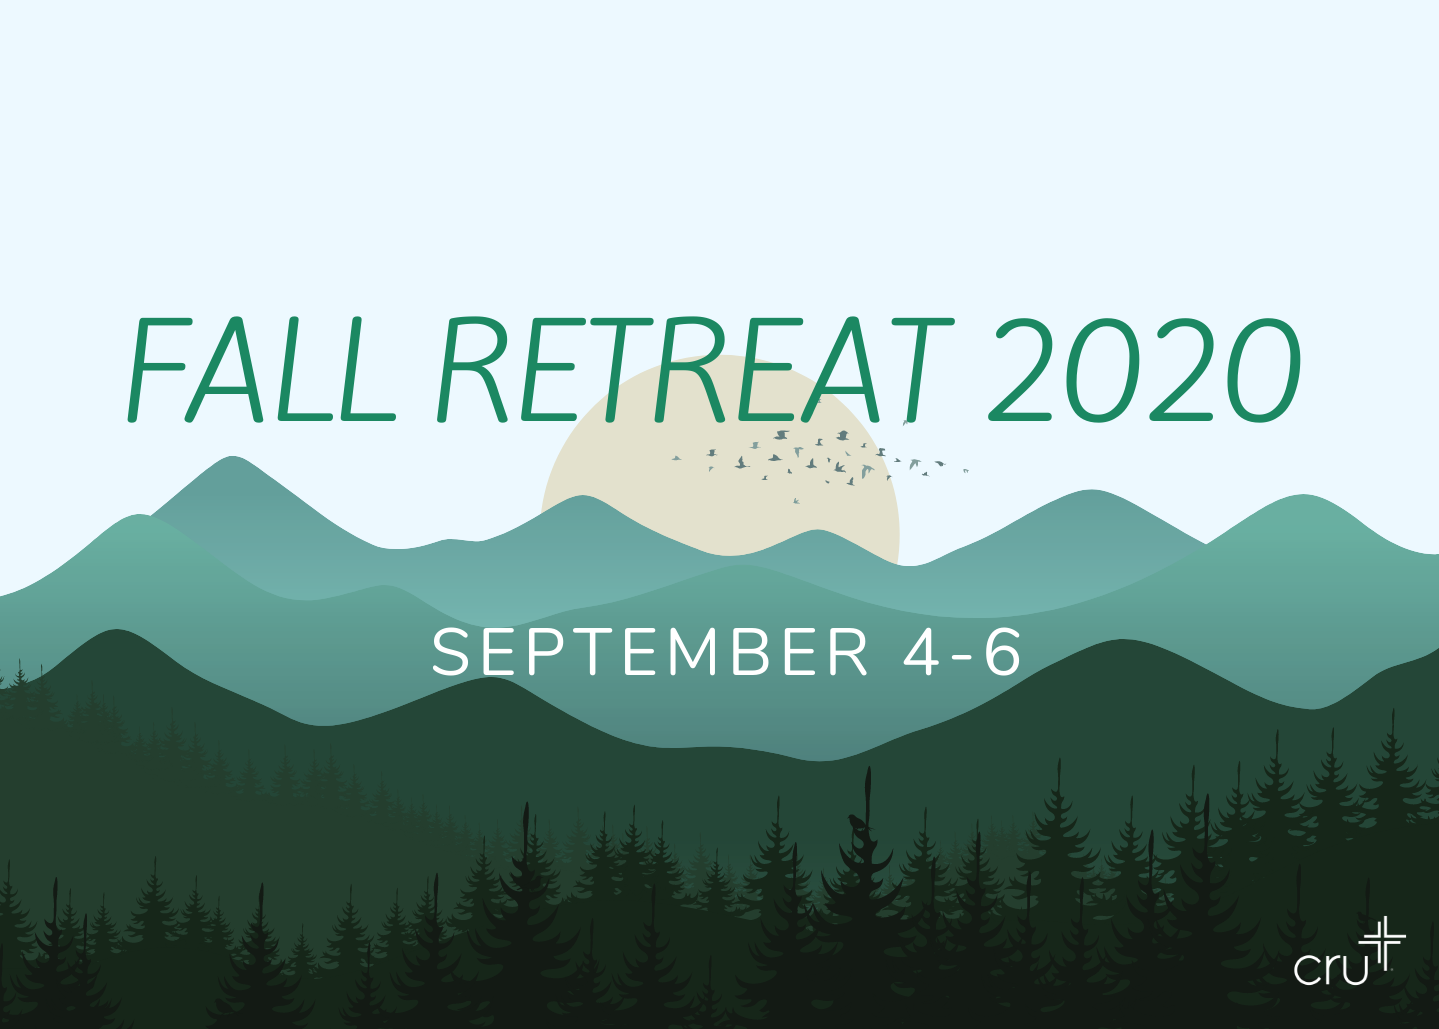 FALL RETREAT 2020